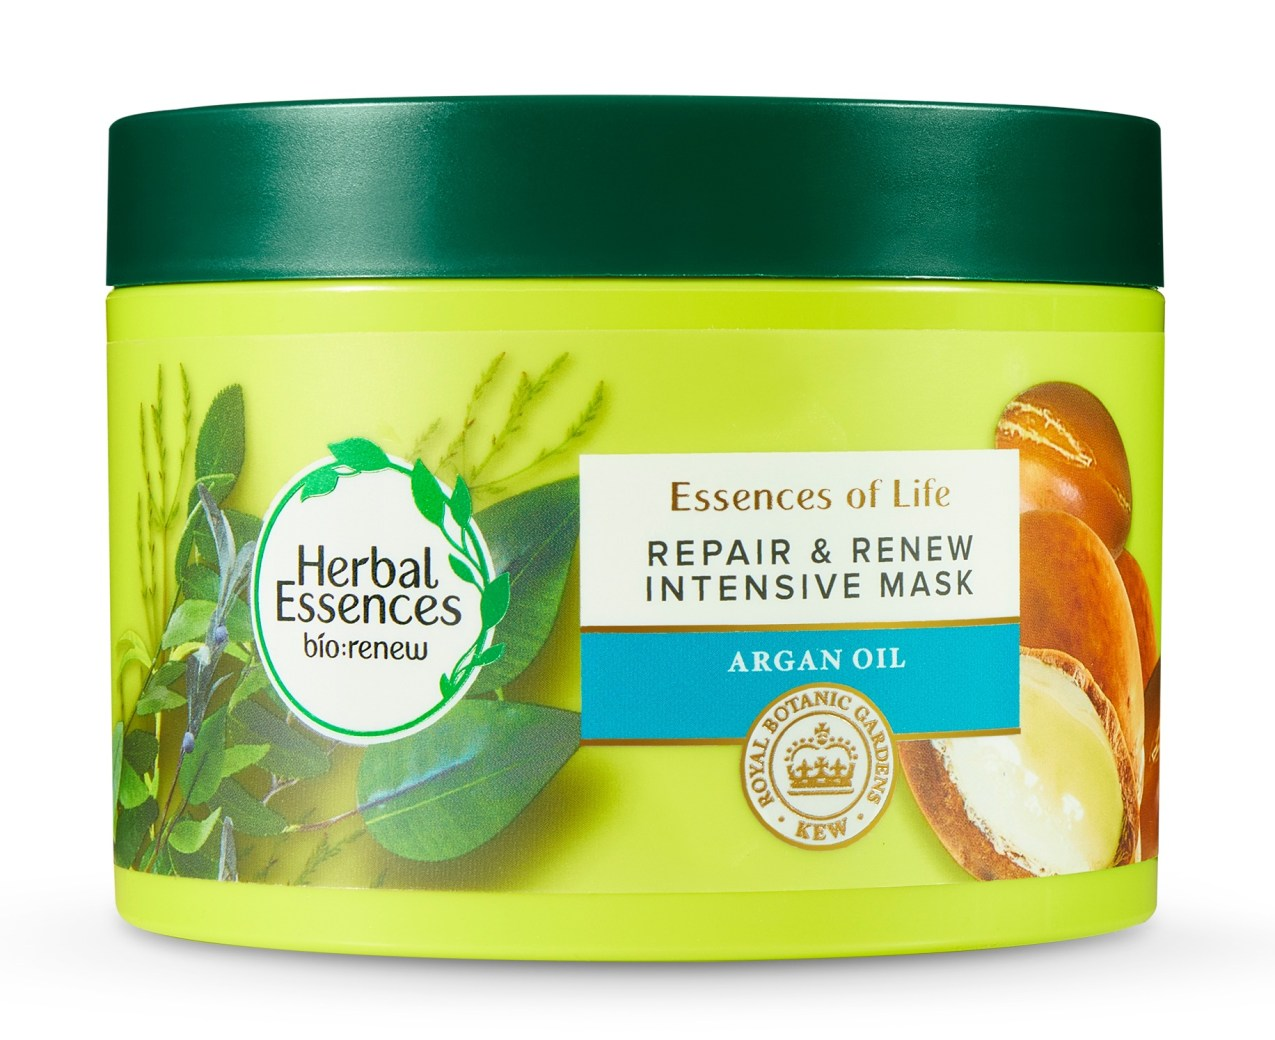 Herbal Essences' new Bio:renew argan oil repair and renew intensive mask is reduced at Boots